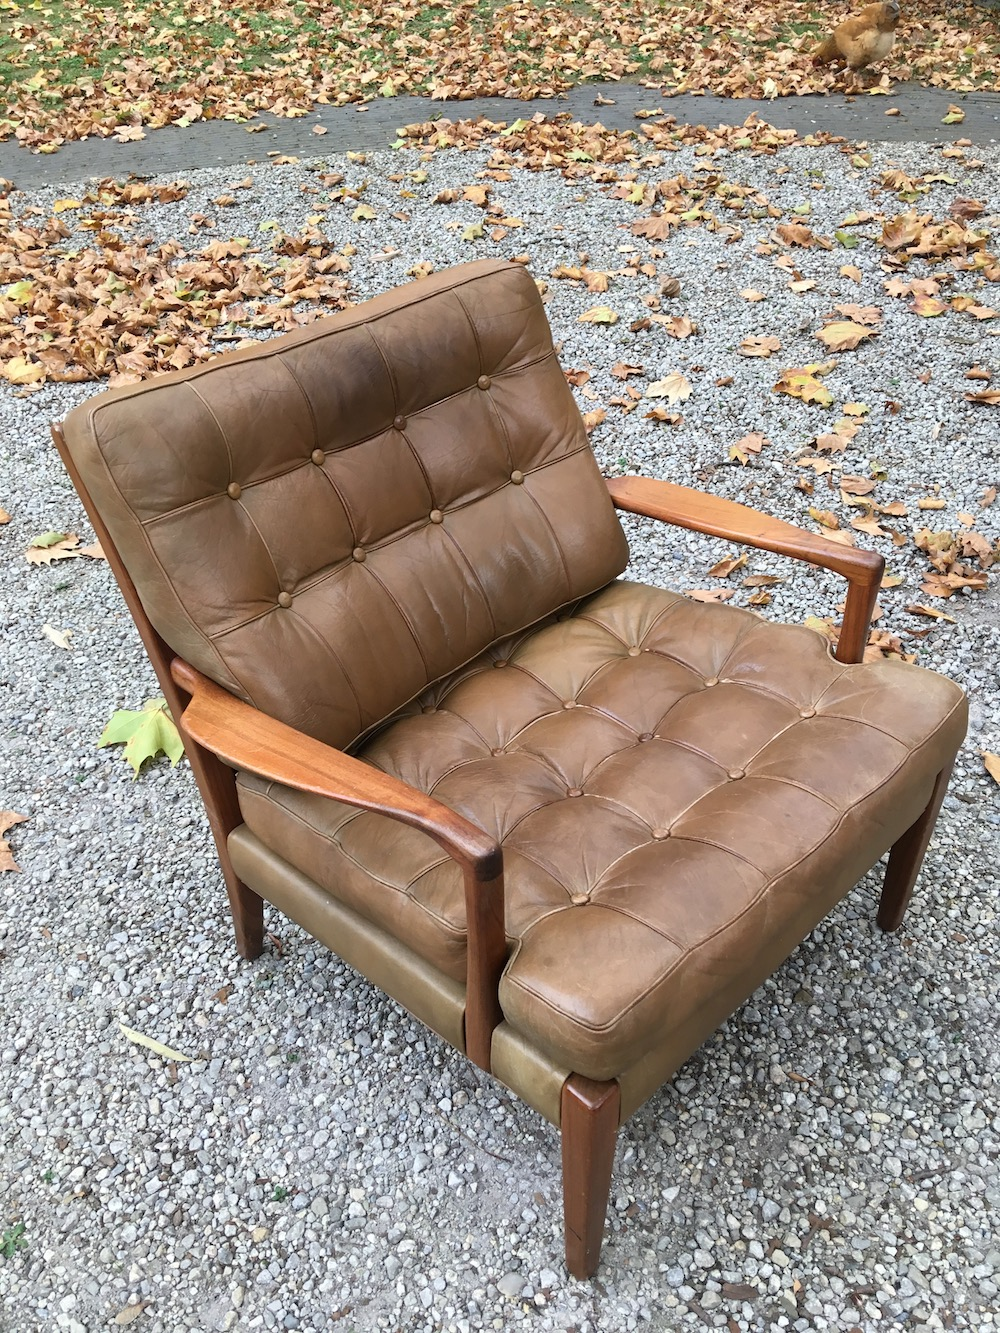 vintage easy chairs by Arne Norell, model Löven, lounge chairs